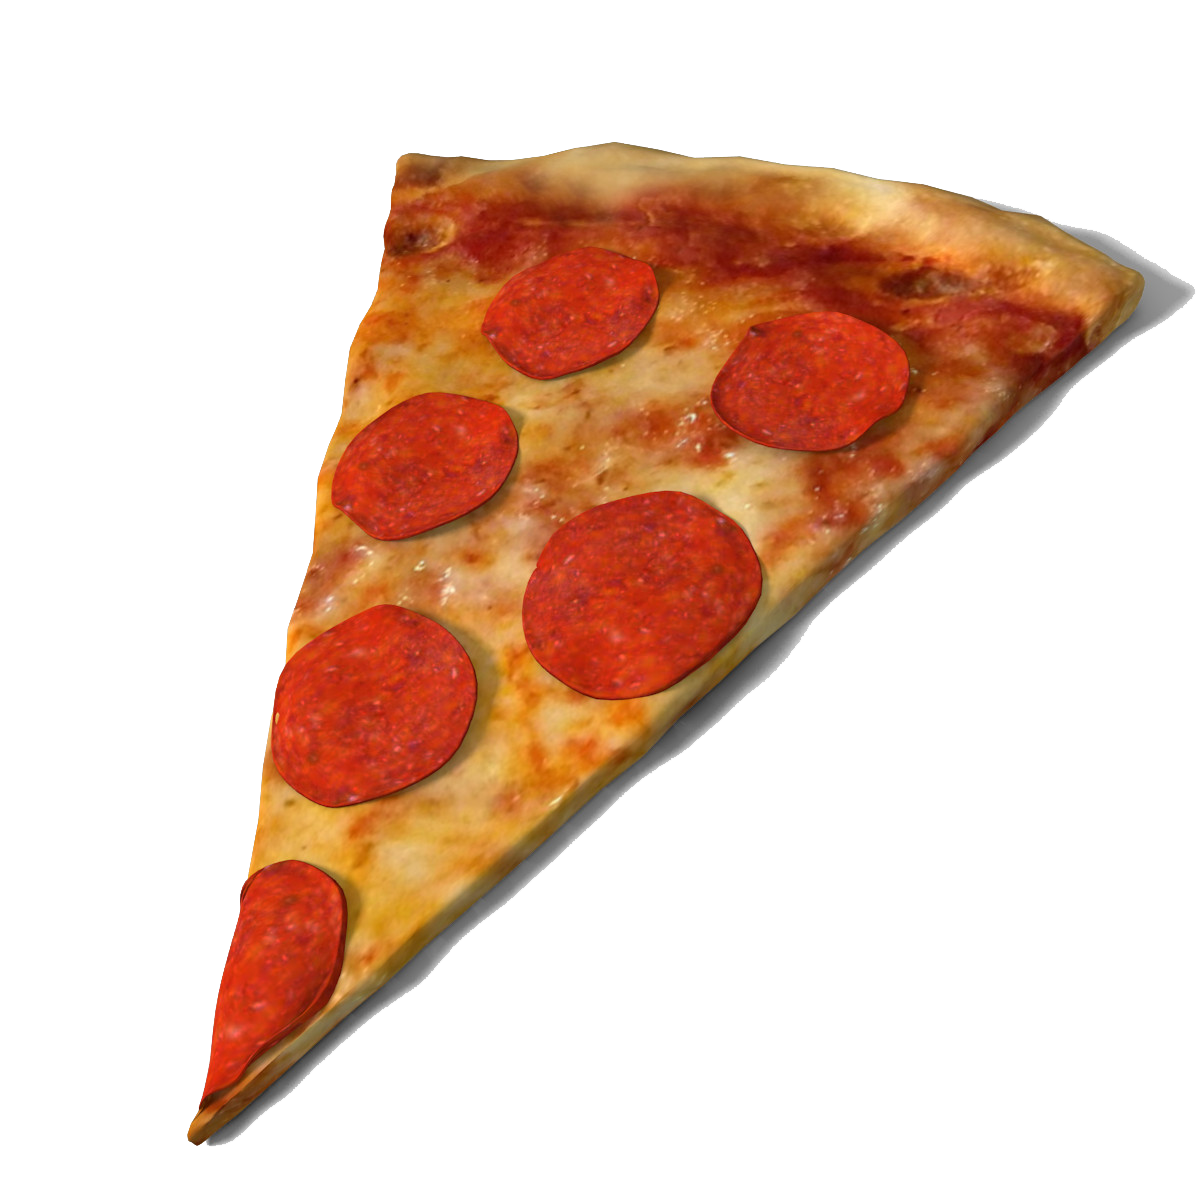 pizza slice transparent pizza slice images #7958